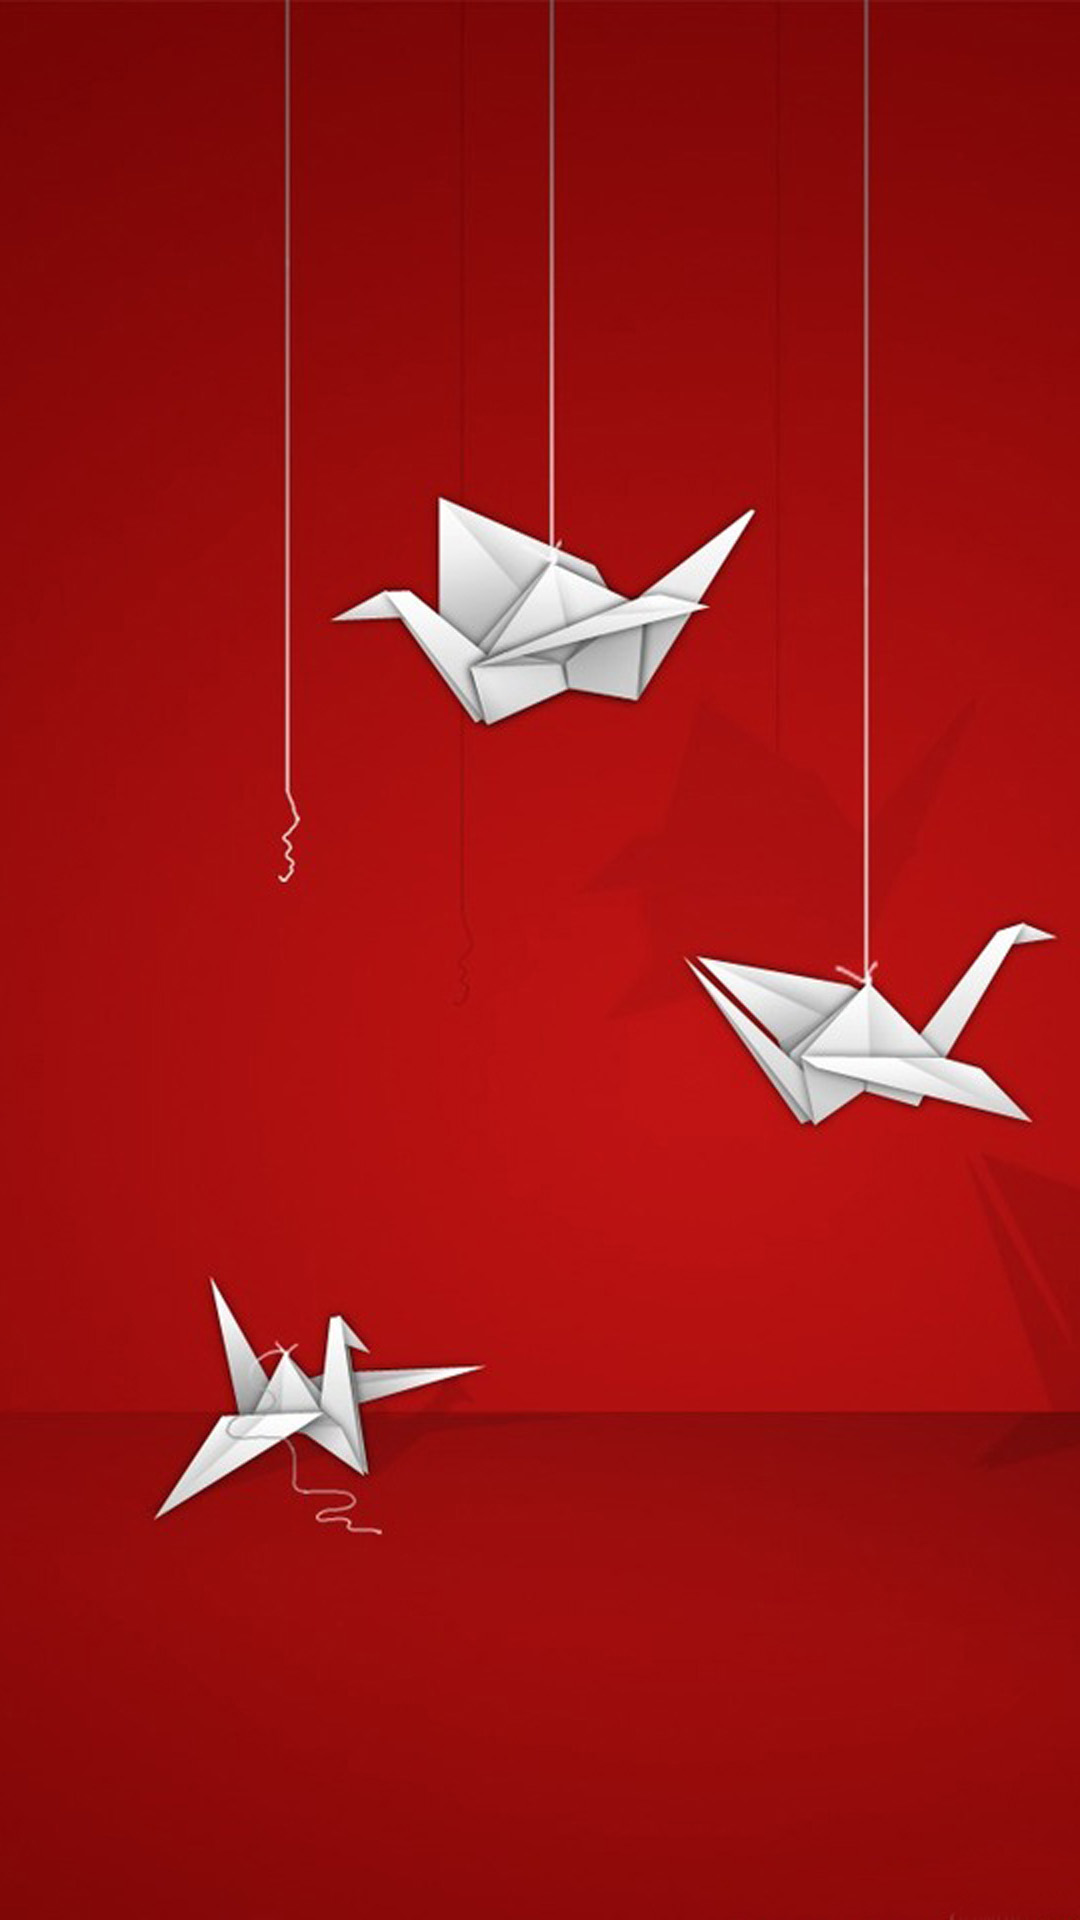 Wallpaper iphone red hd - Background Origami Cranes On A Red Hd Wallpaper Iphone 6 Plus